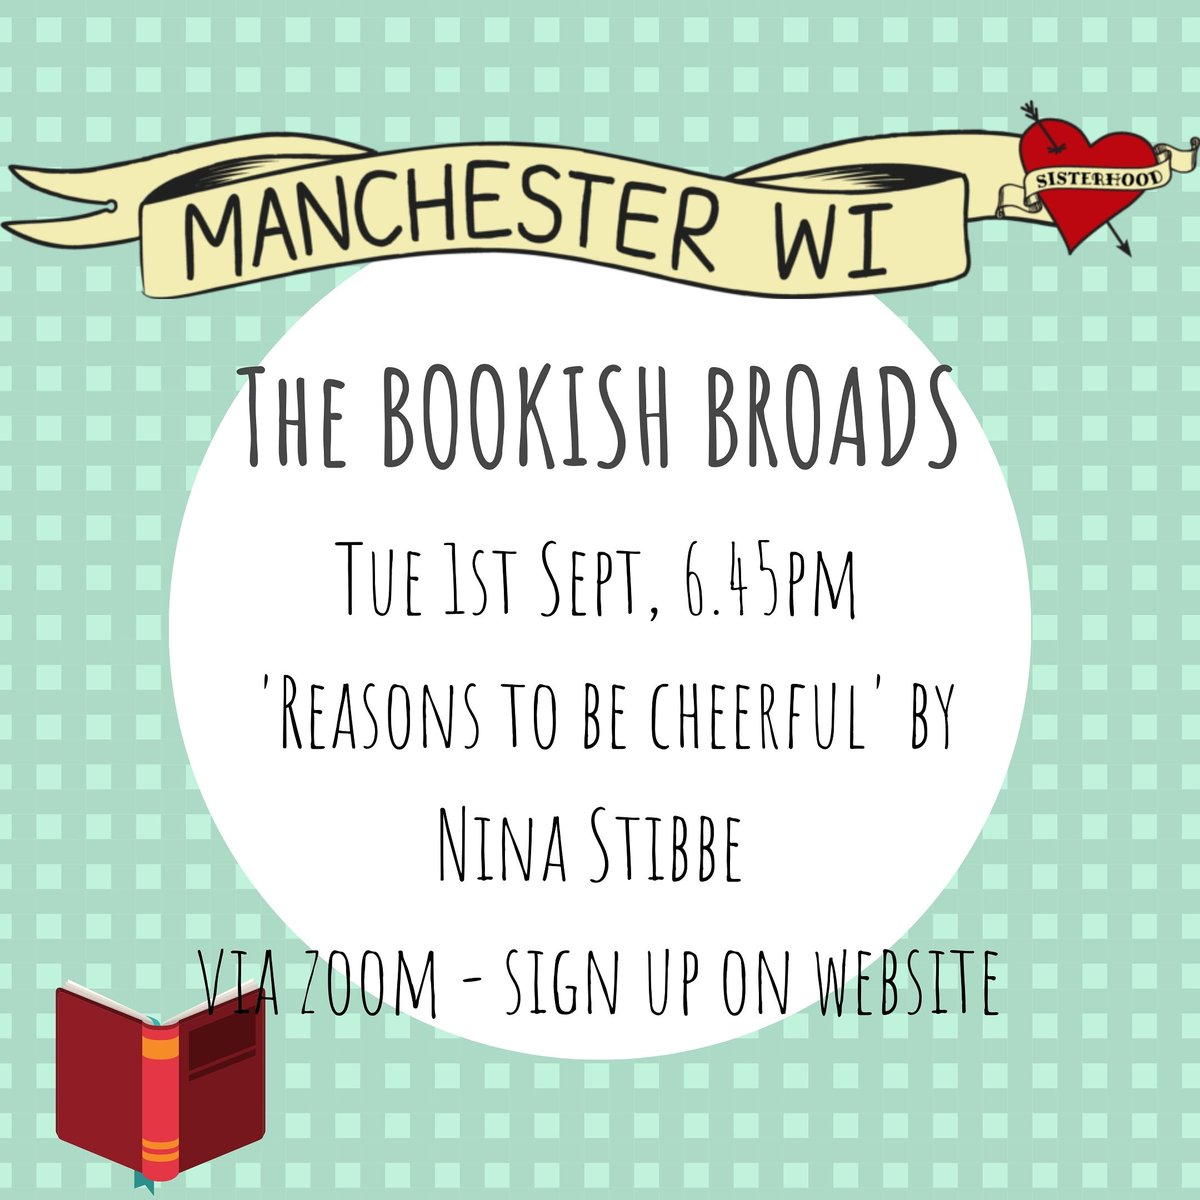 Bookish Broads! Dont forget to register for tonight if you want to join us in a discussion of Nina Stibbes Reasons To Be Cheerful. And bring your suggestions for spy-fi/ sci fi for September! #bookclub #bookishbroads #womensinstitute #manchesterwi